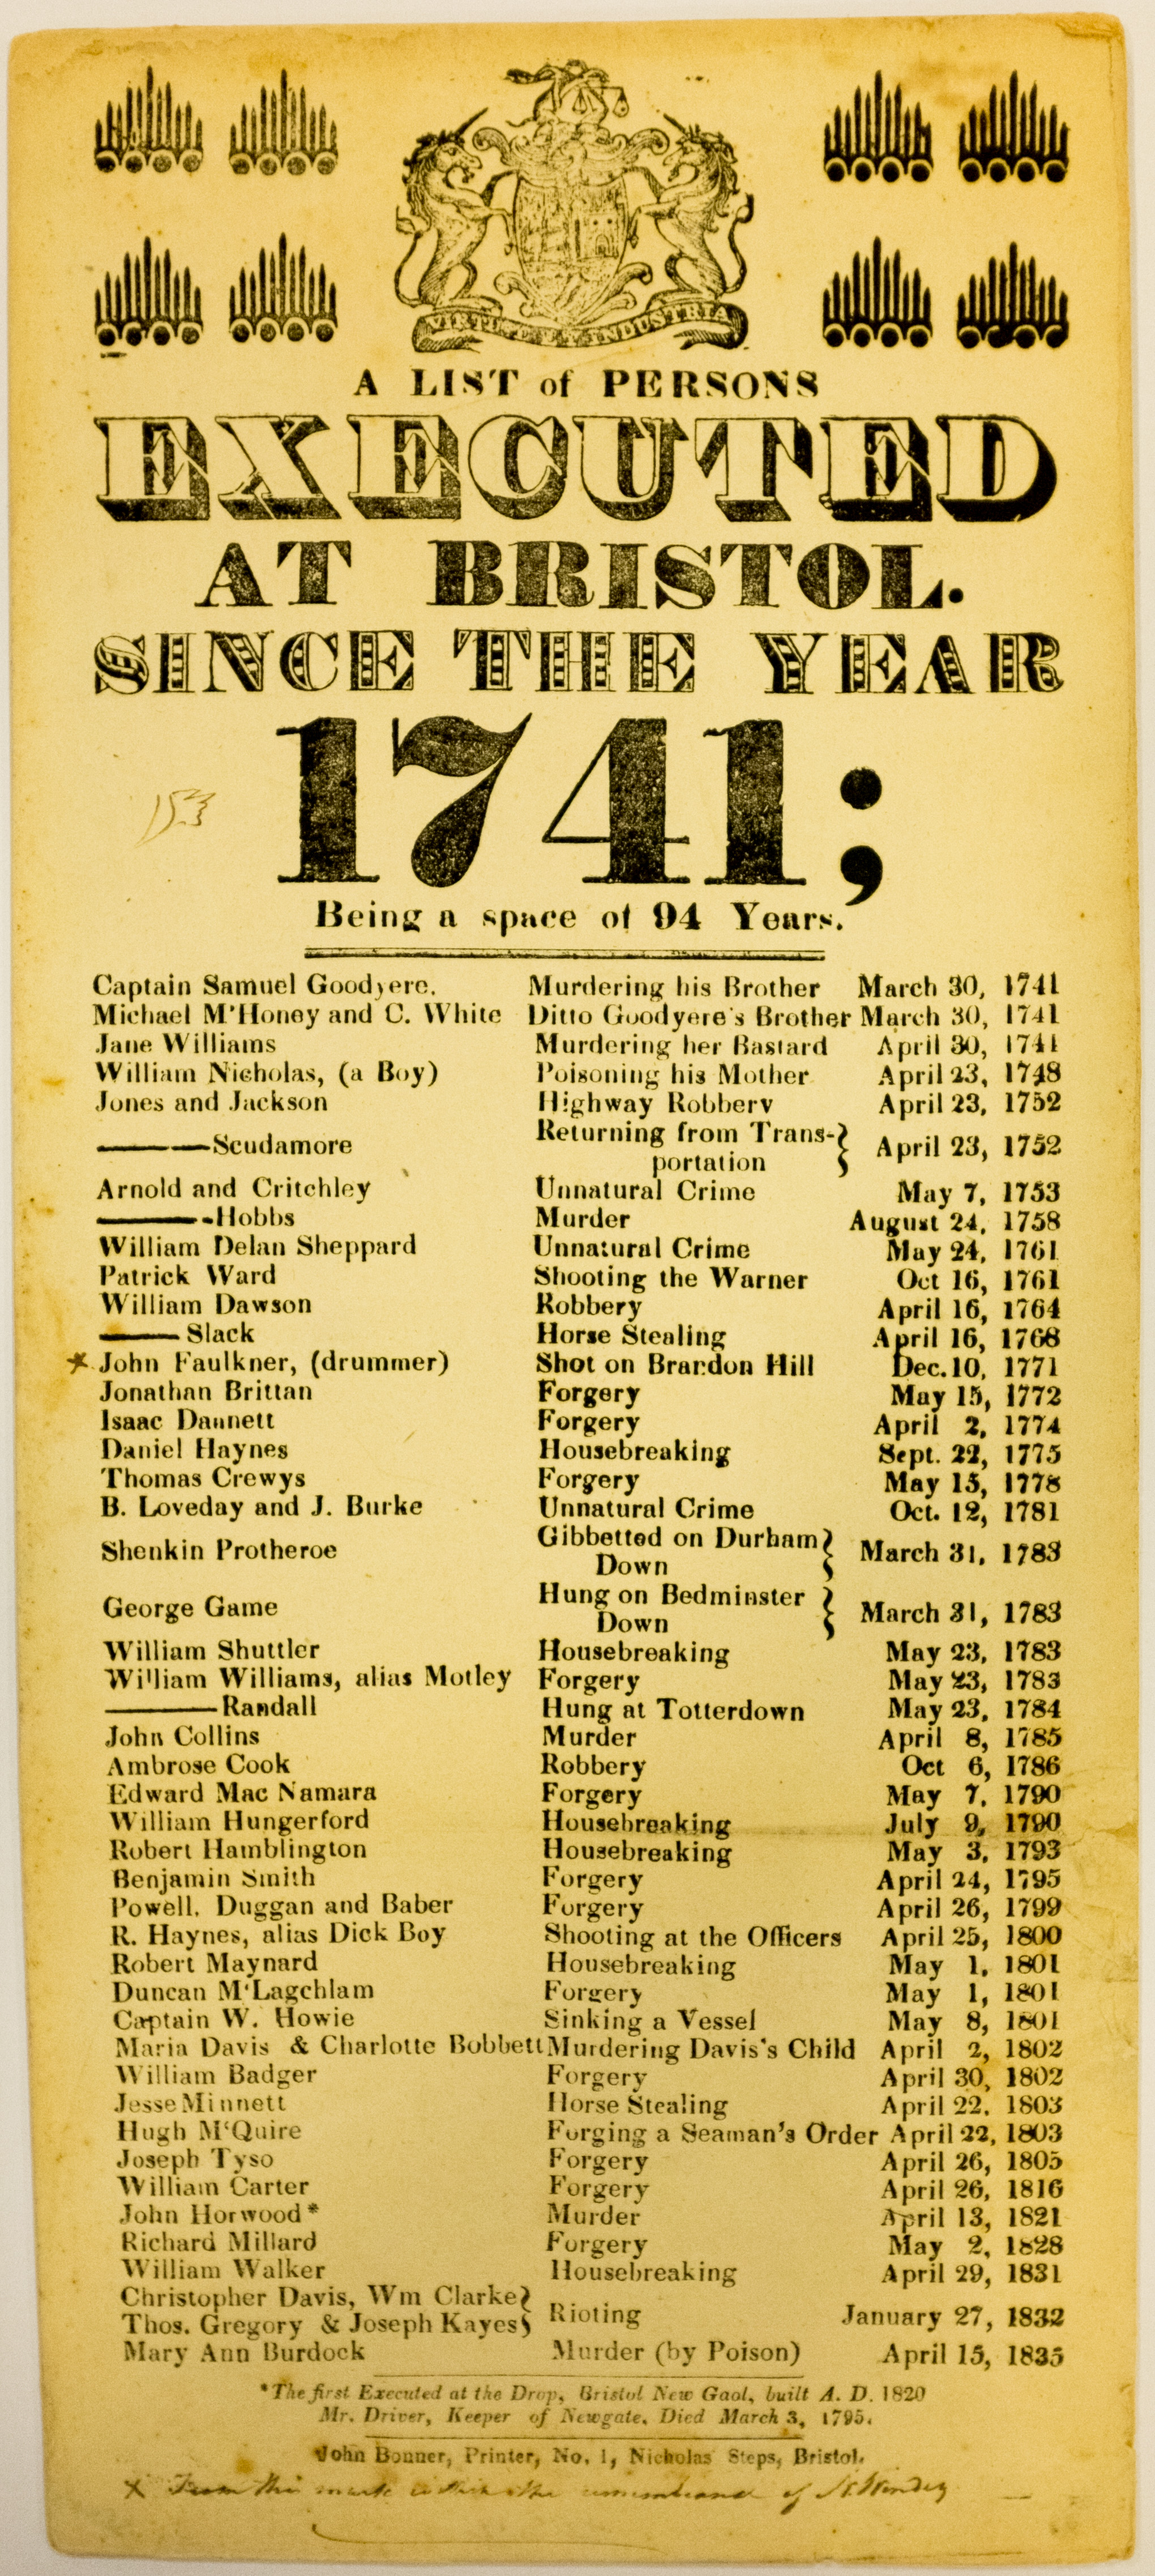 A list of names of people executed in Bristol and their crimes, 1835